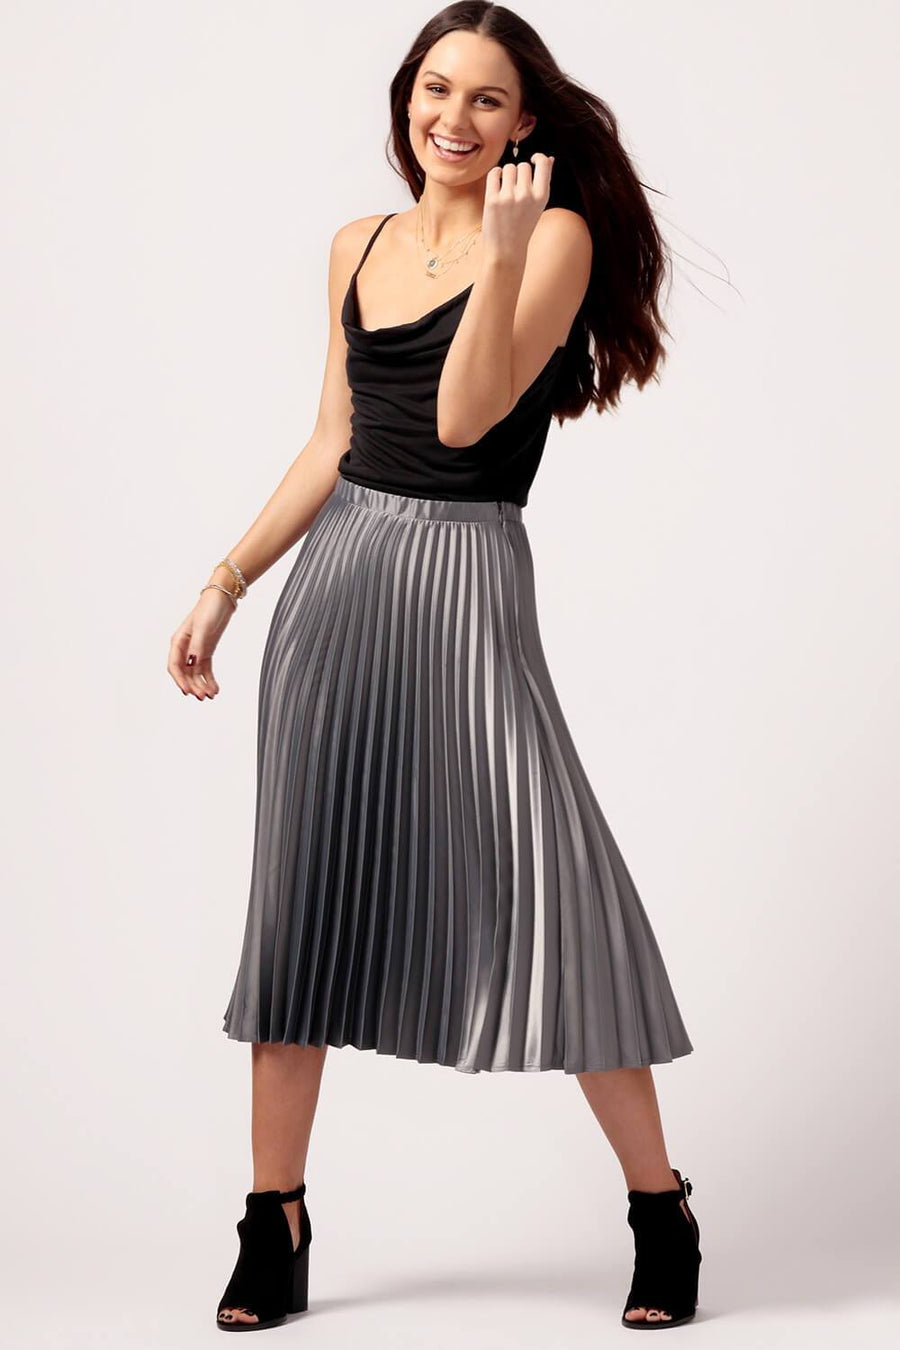 MILK MONEY Womens Silver Pleated Skirt